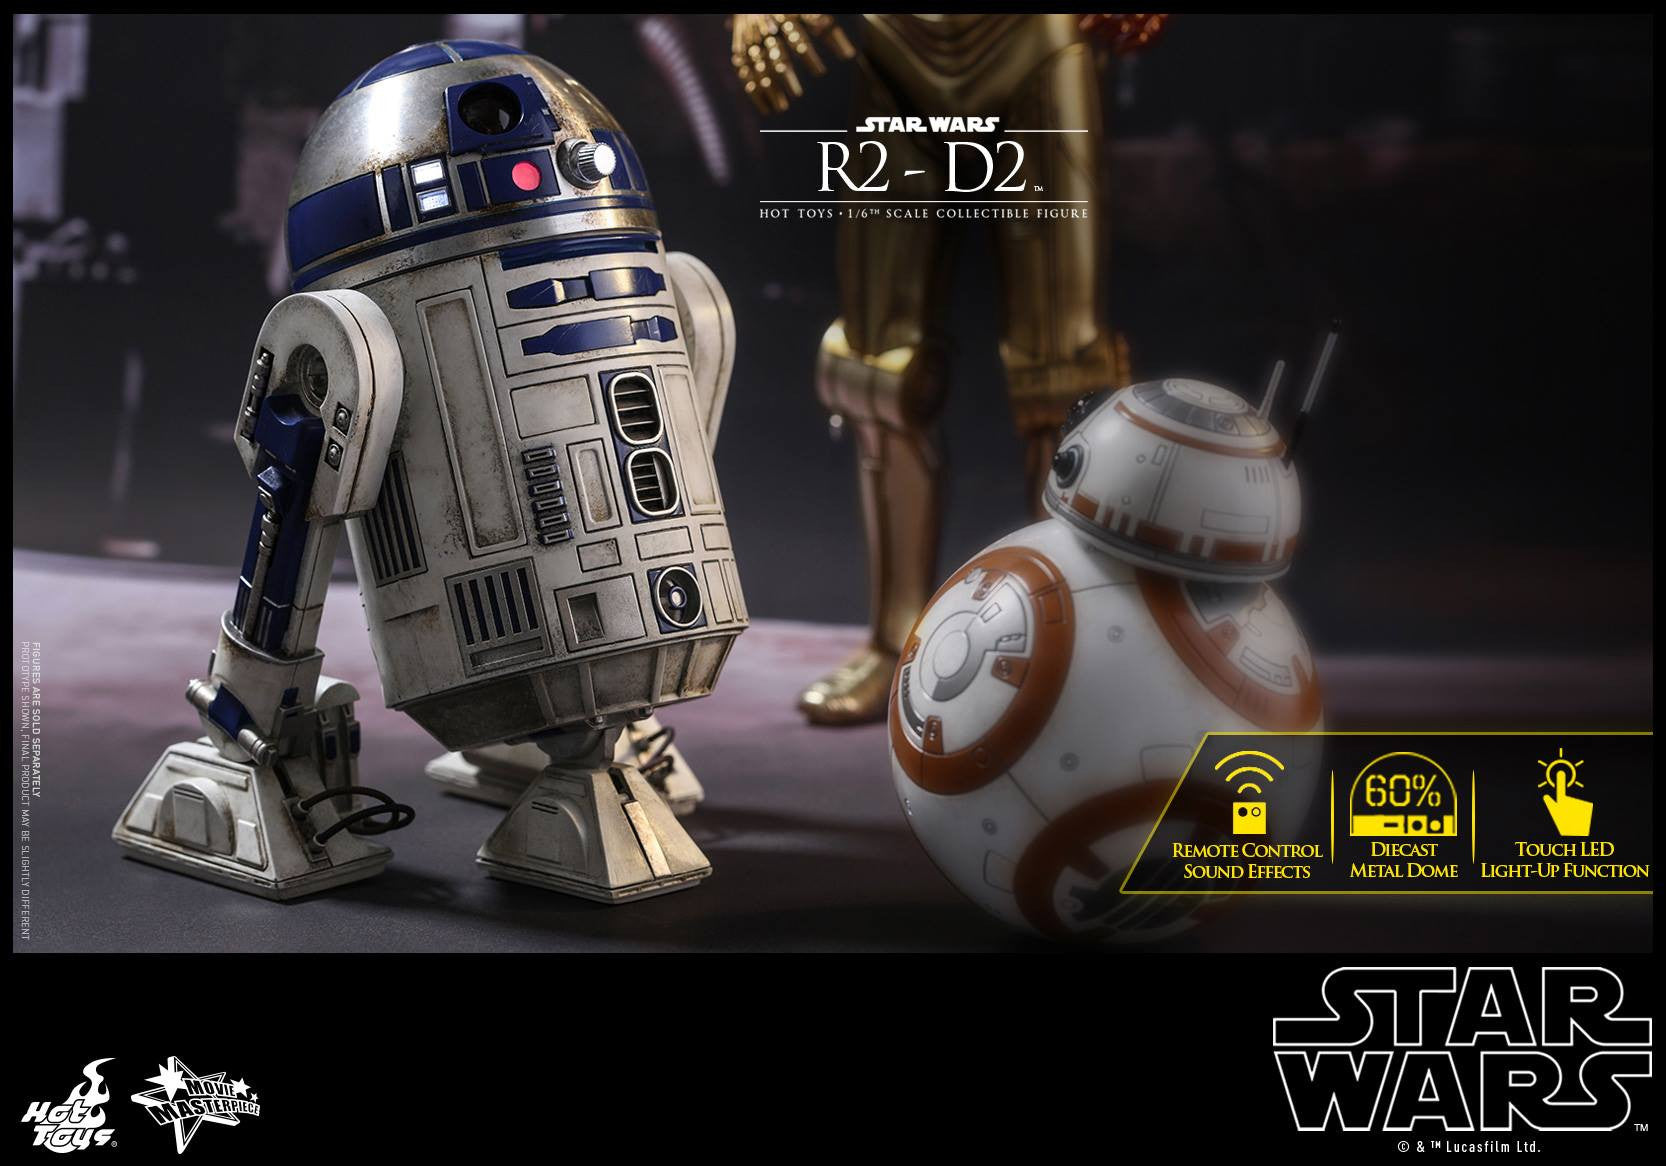 Hot Toys - MMS408 - Star Wars: The Force Awakens - R2-D2 - Marvelous Toys - 4